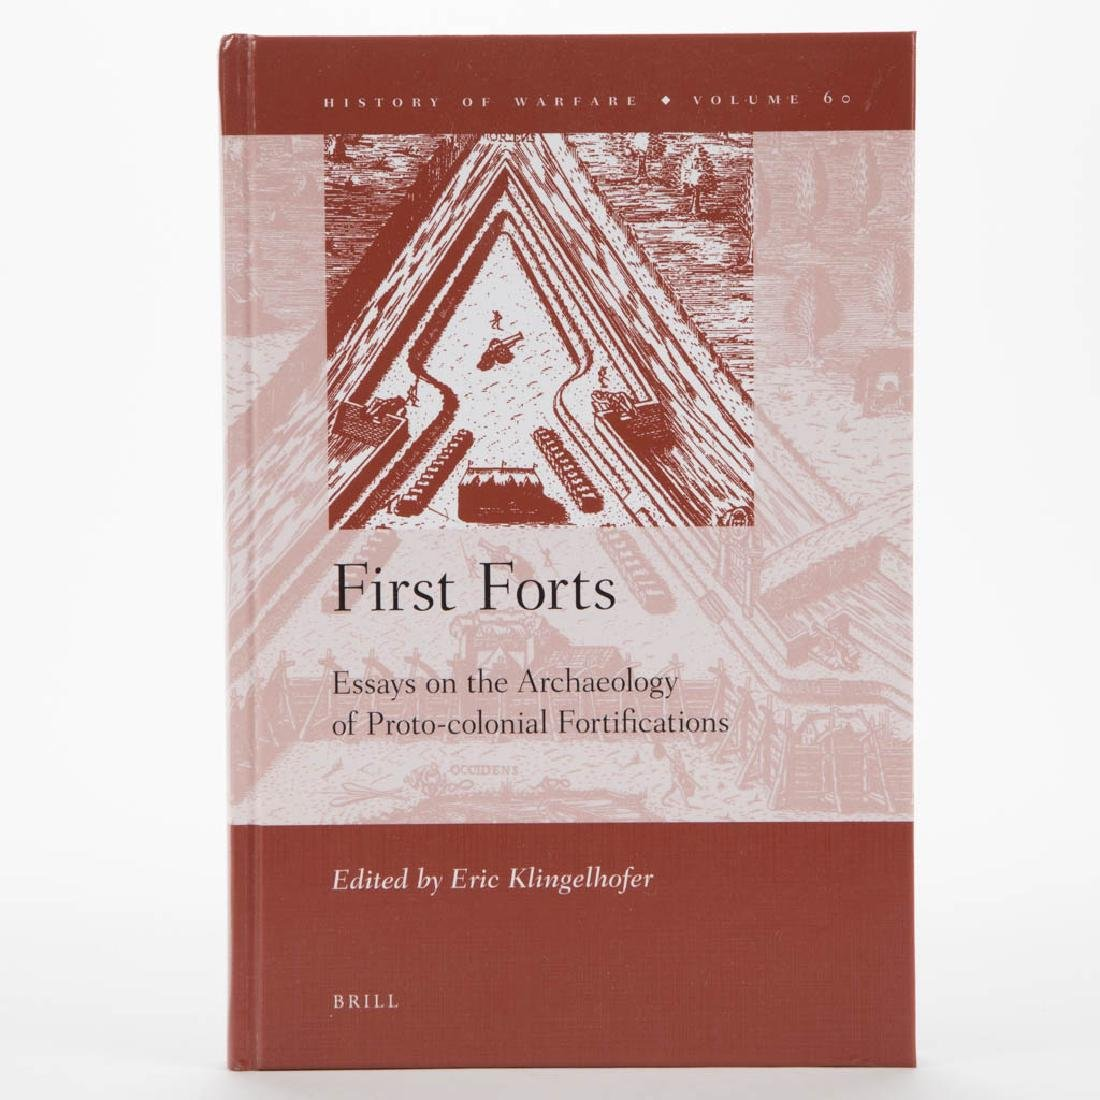 MILITARY FORTIFICATION HISTORY REFERENCE VOLUME